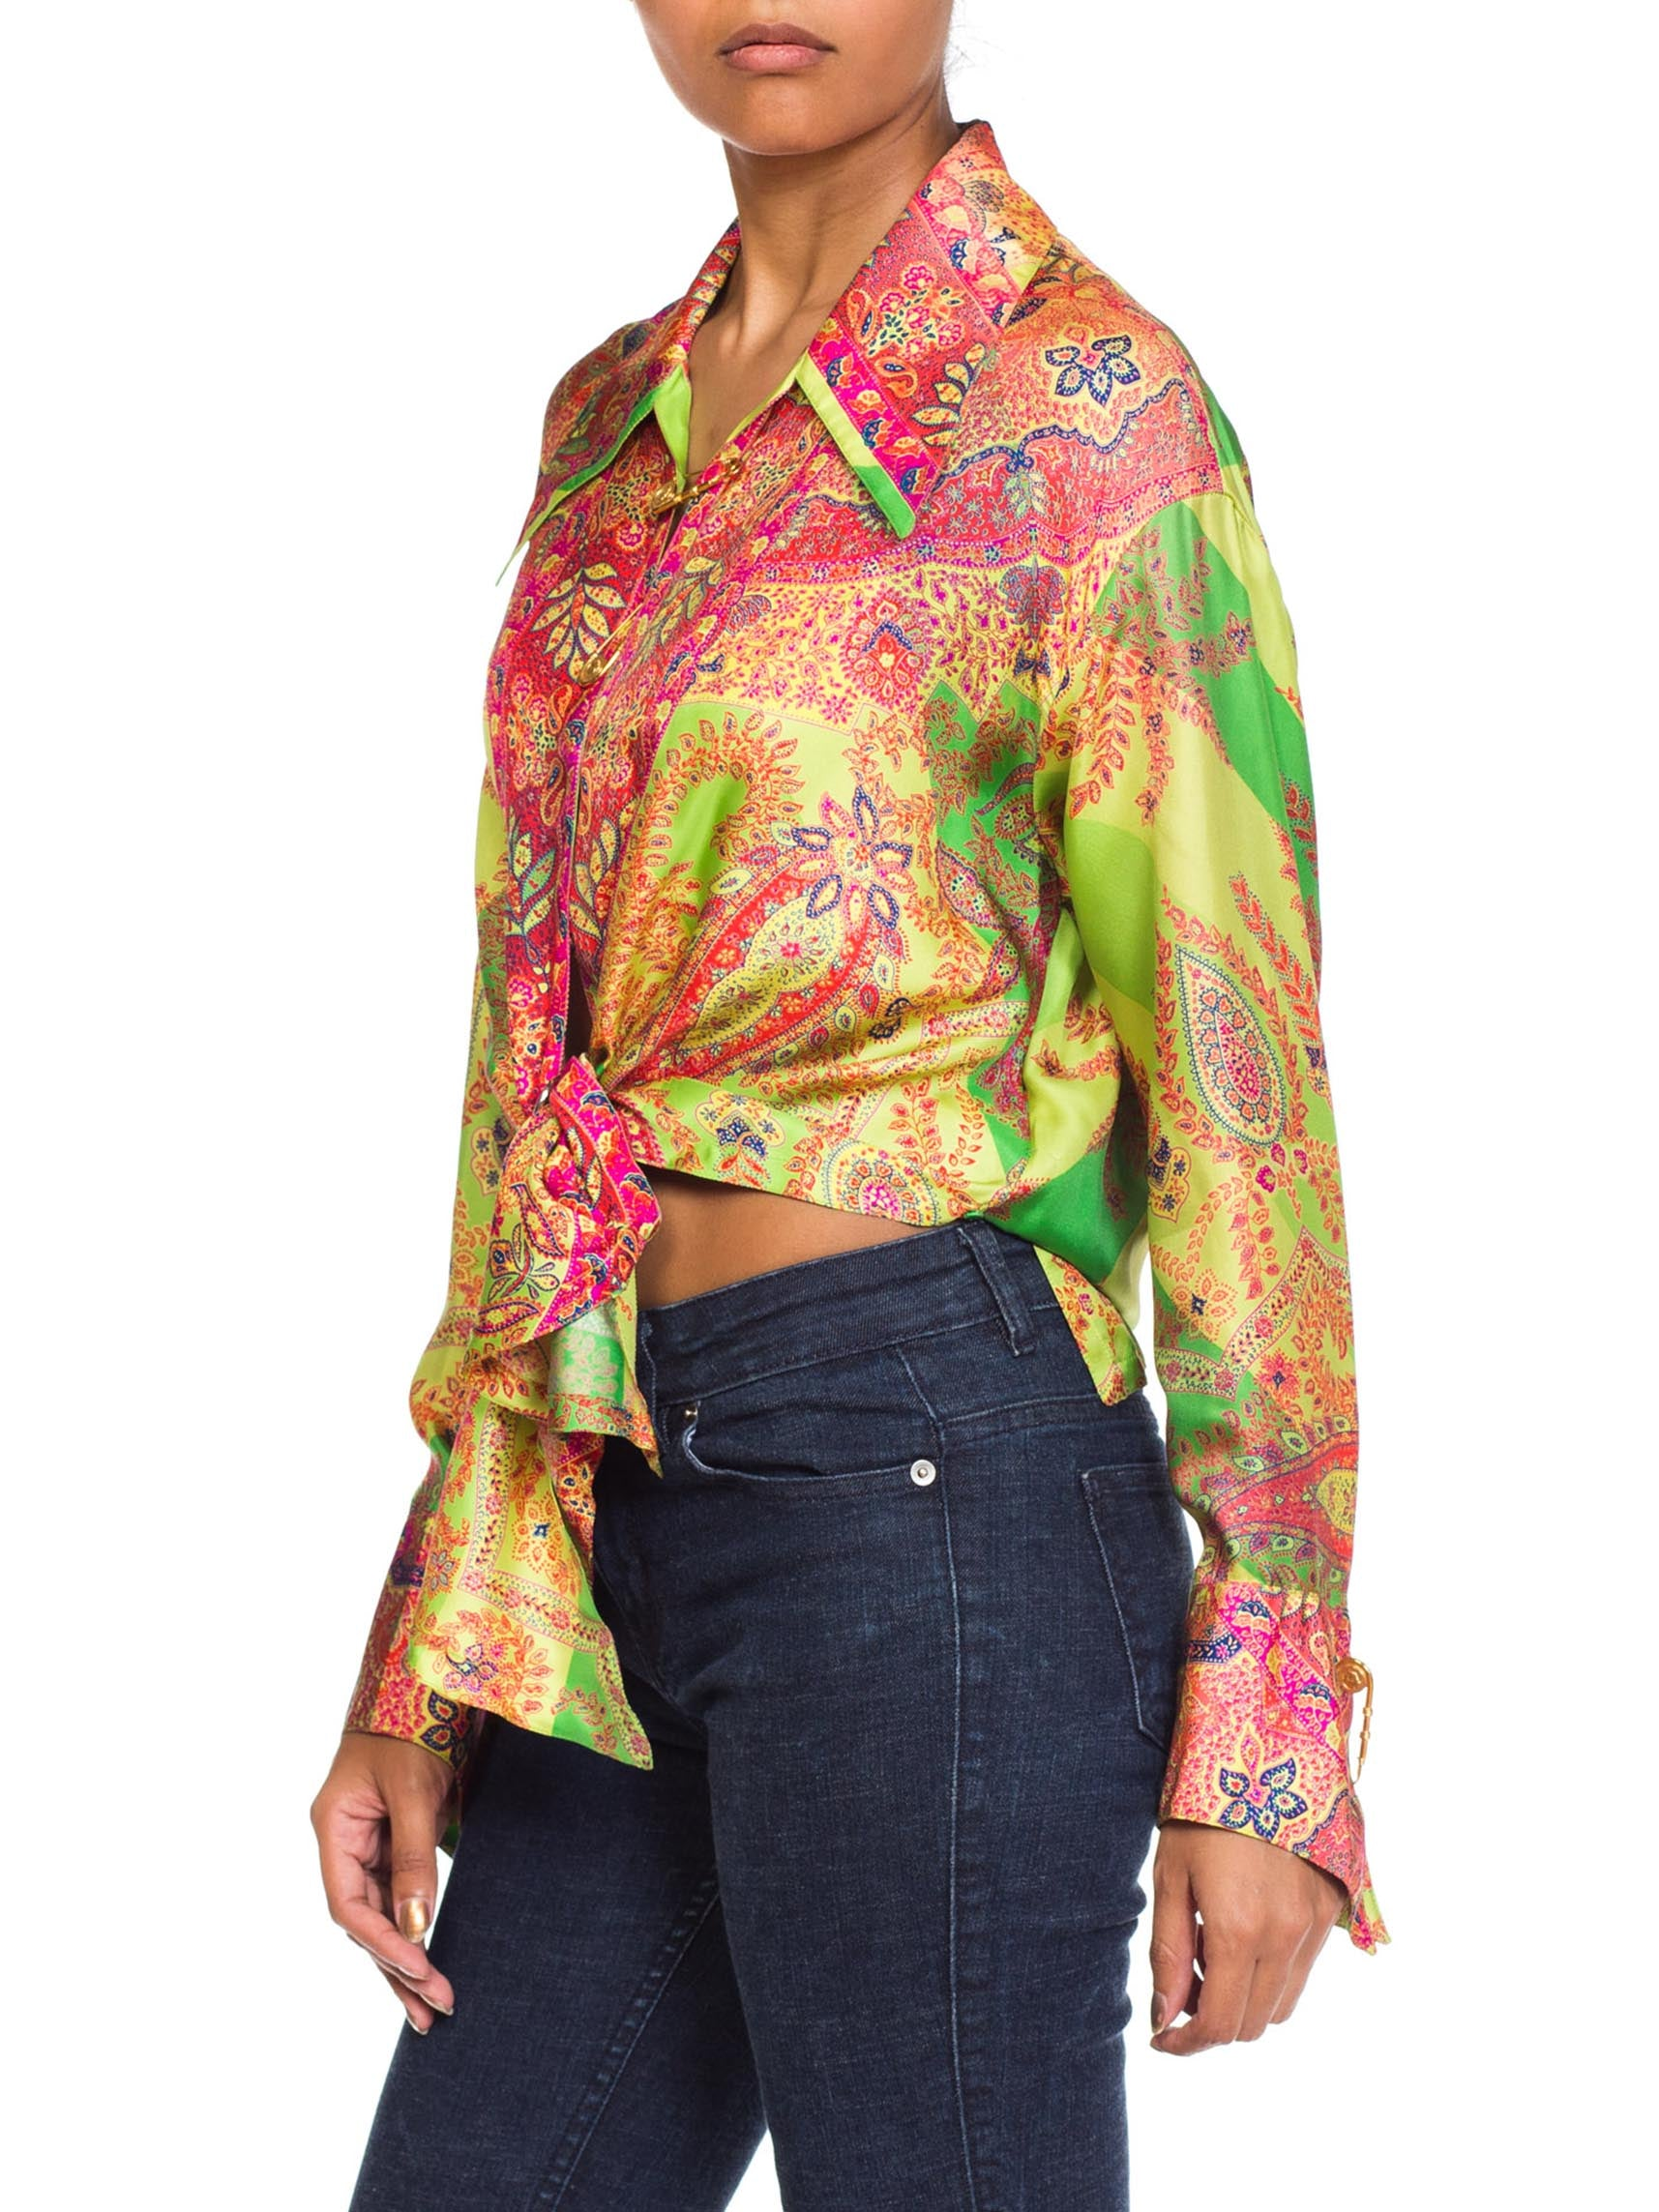 1990S GIANNI VERSACE Paisley Silk Punk Safety Pin Collection Blouse Sz 40